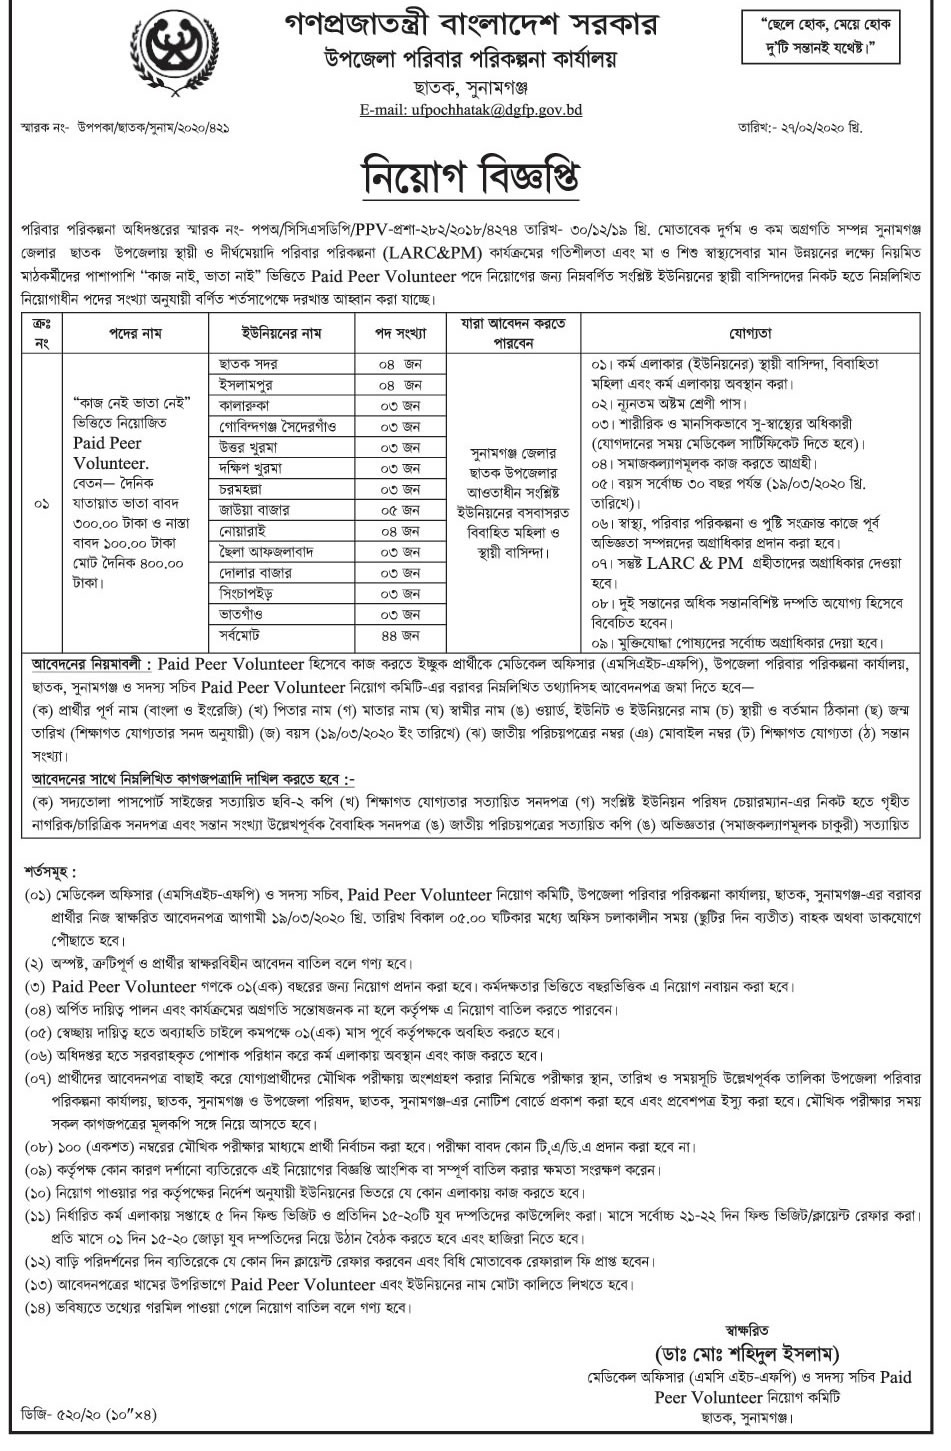 Chhatak Bazar sunamganj Upazila family planning office Job Circular 2020